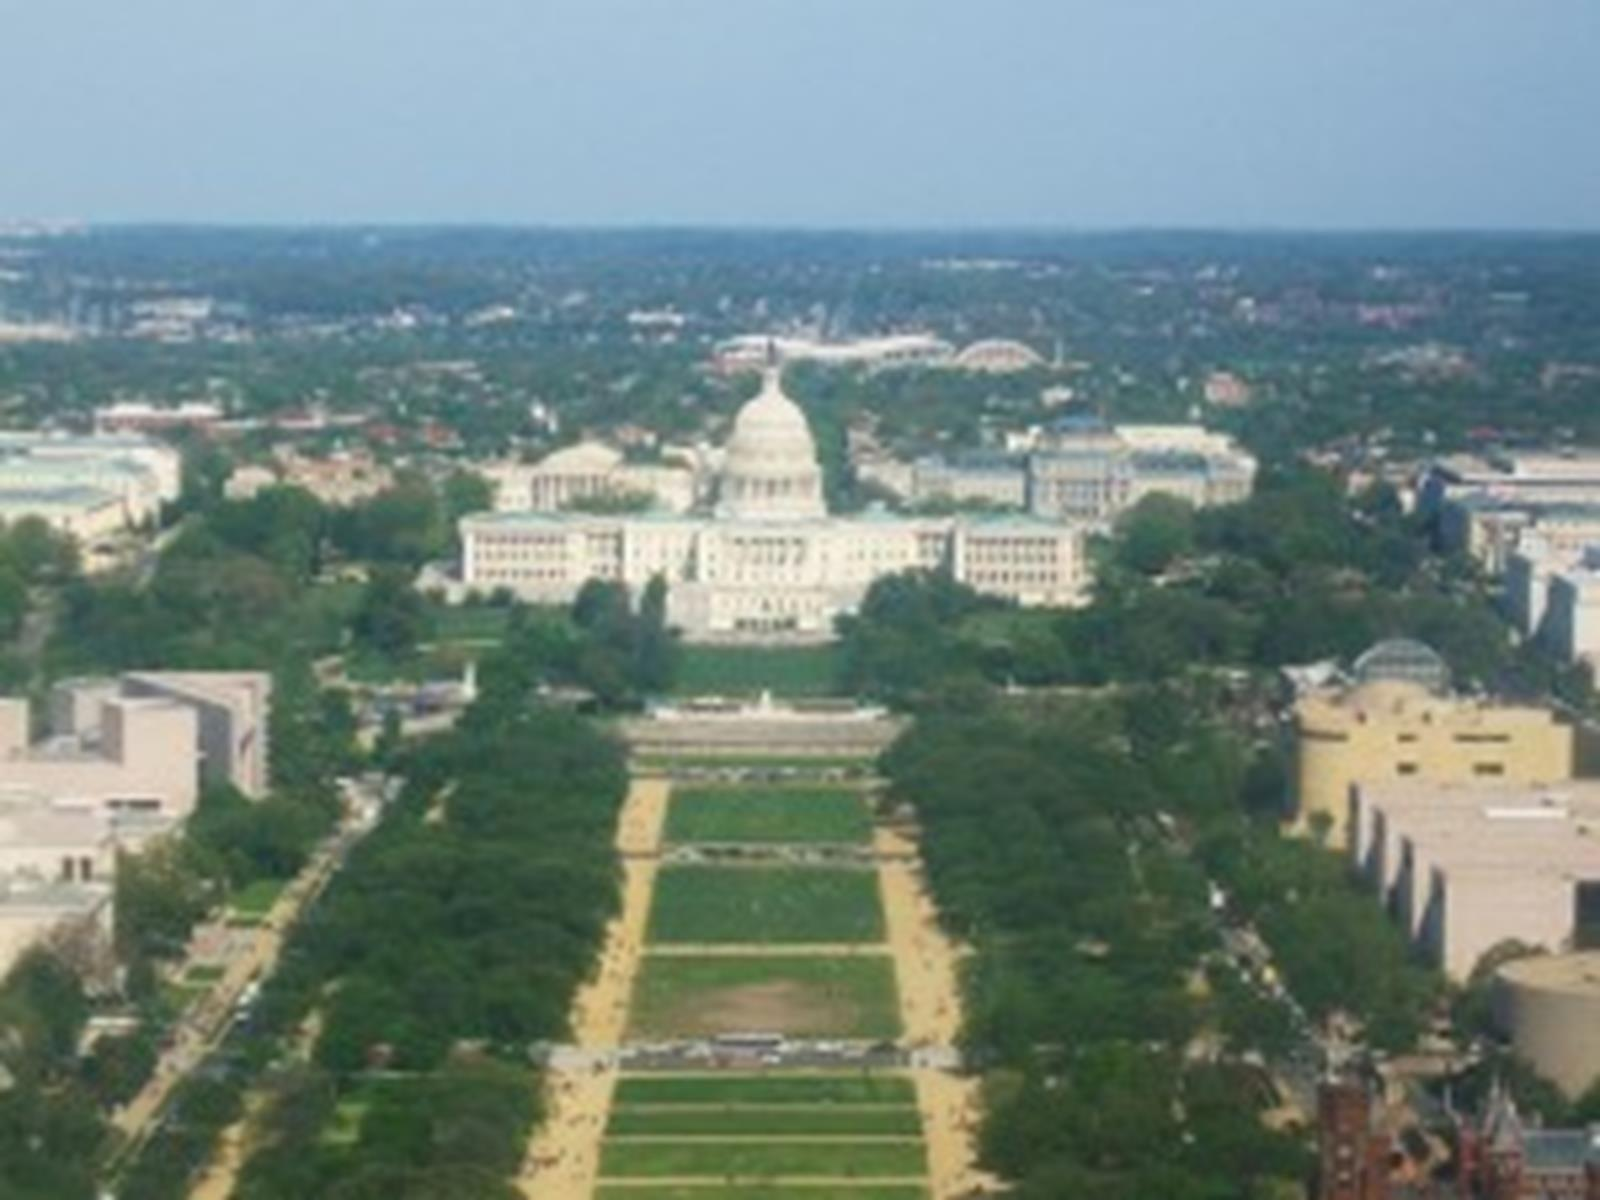 The Capitol and the National Mall from the top of the Washington Monument